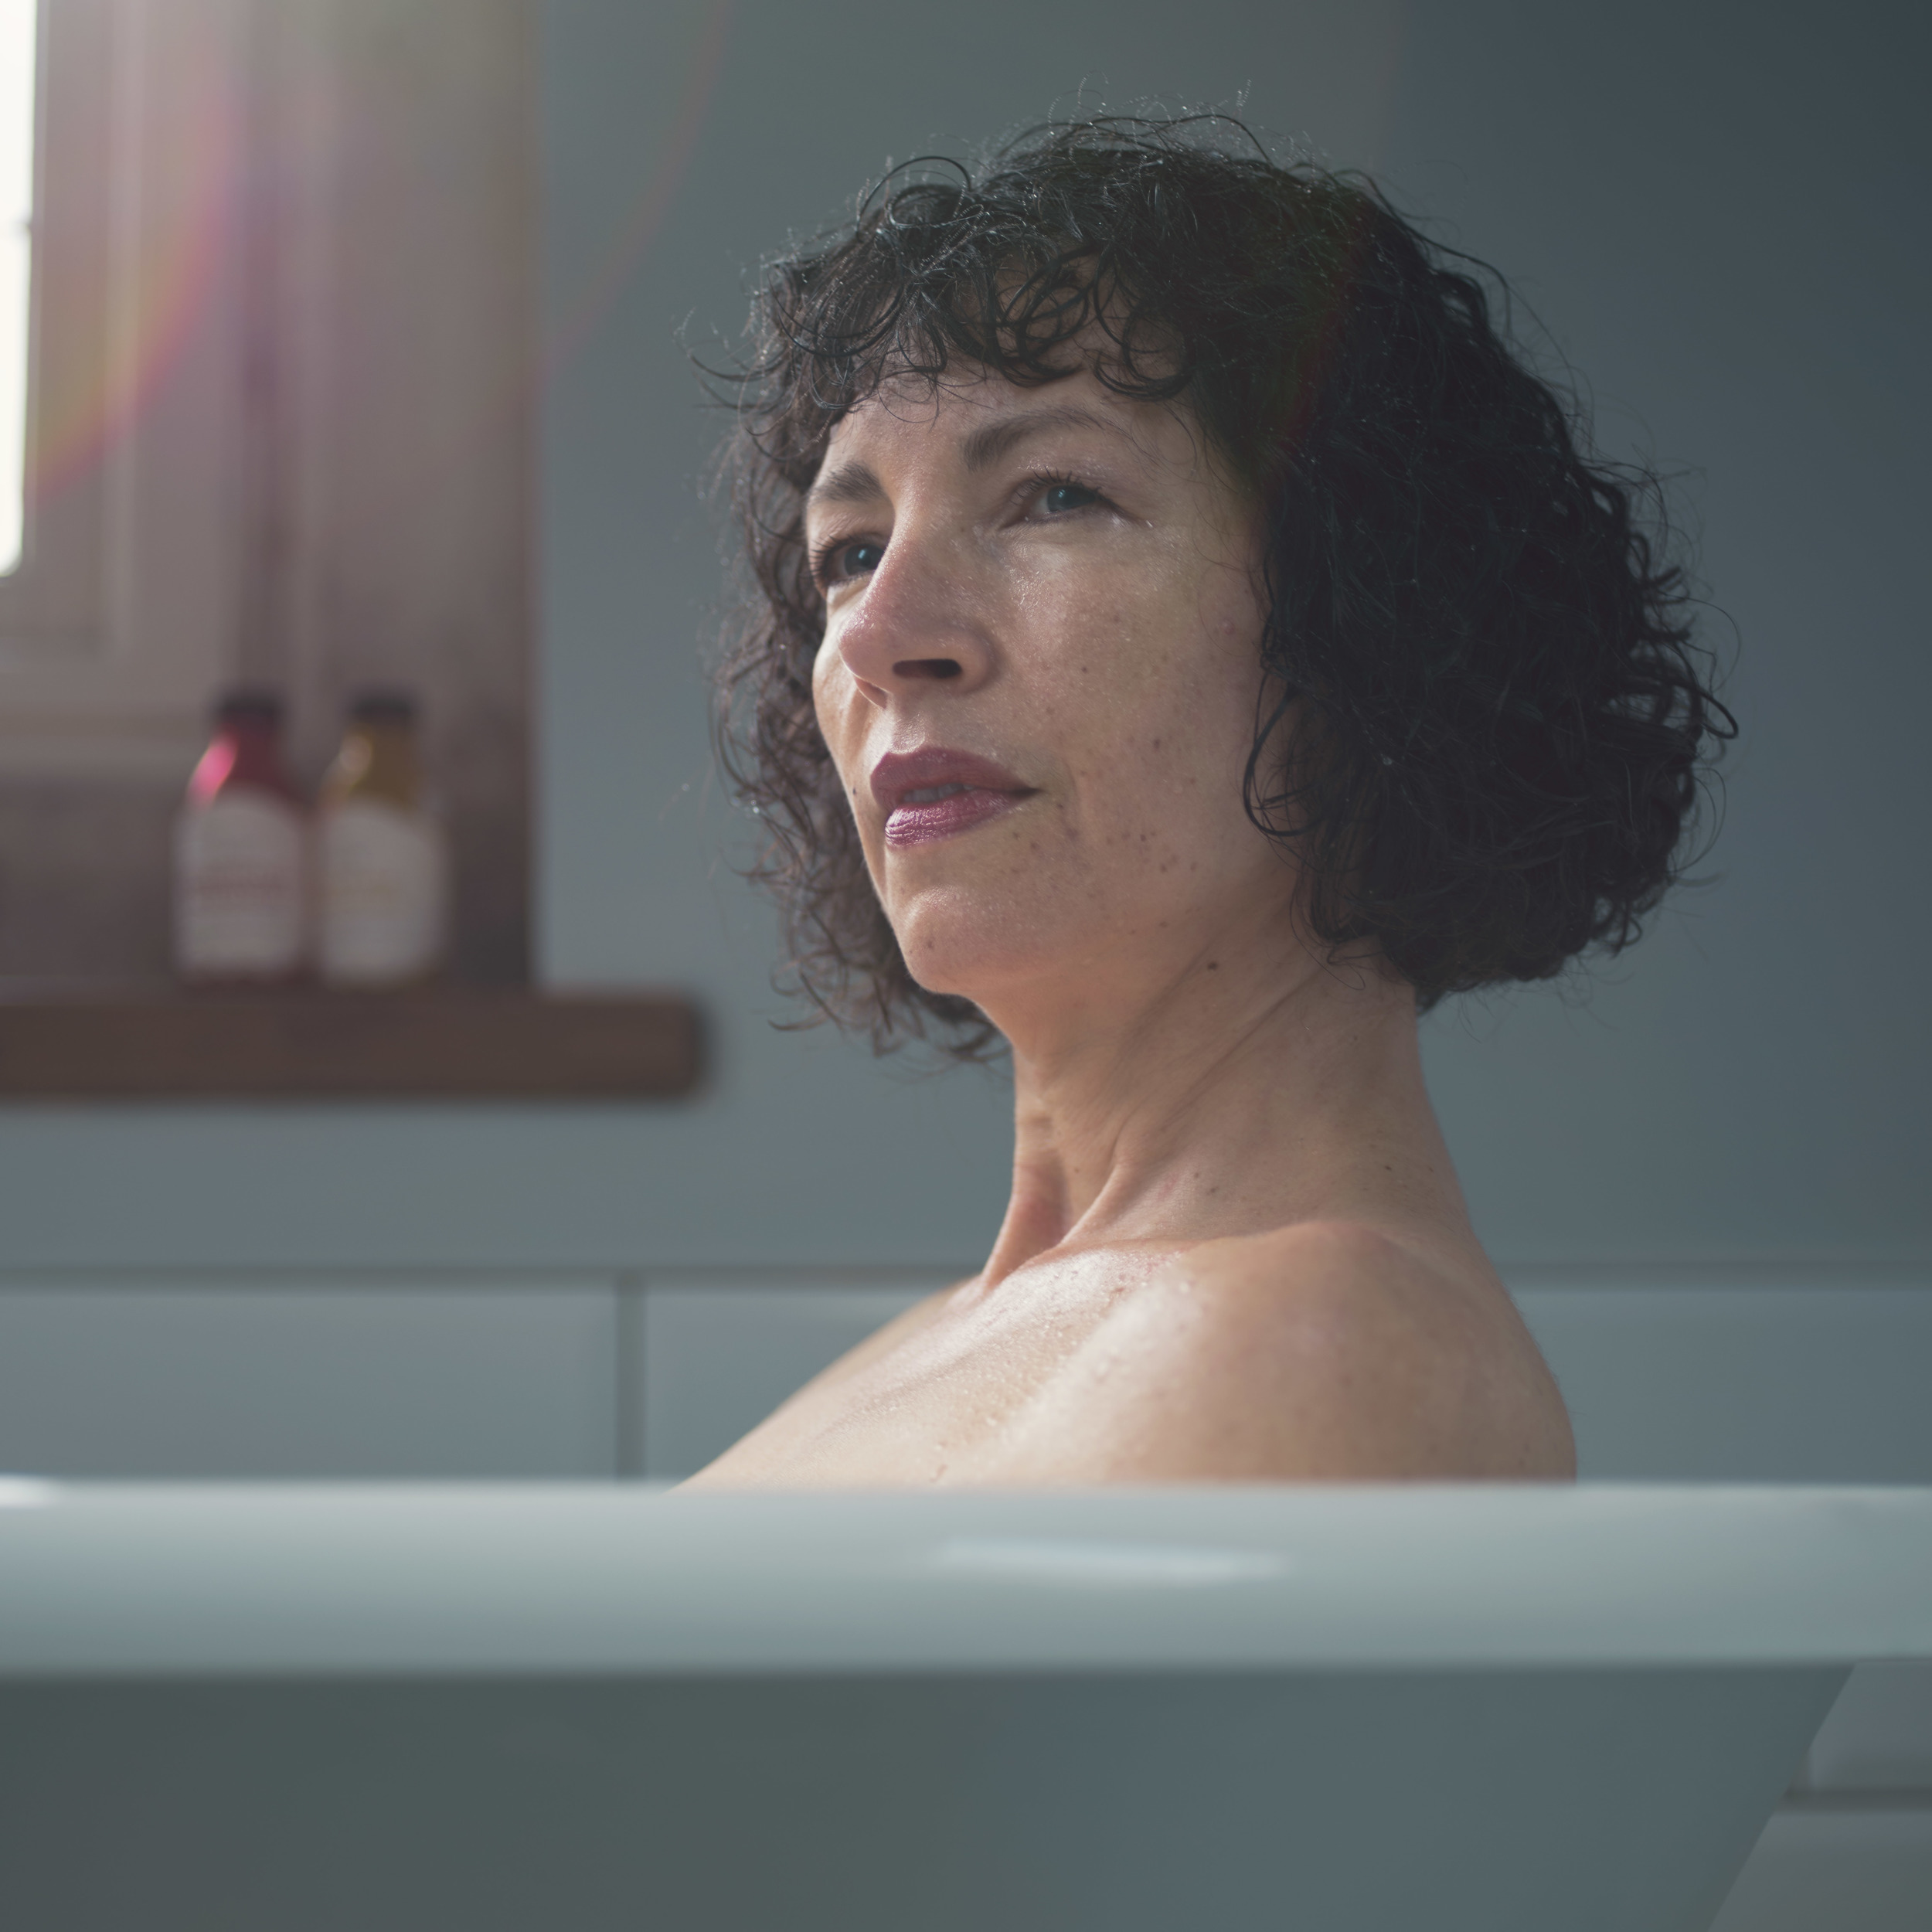 Lady in the bath portrait